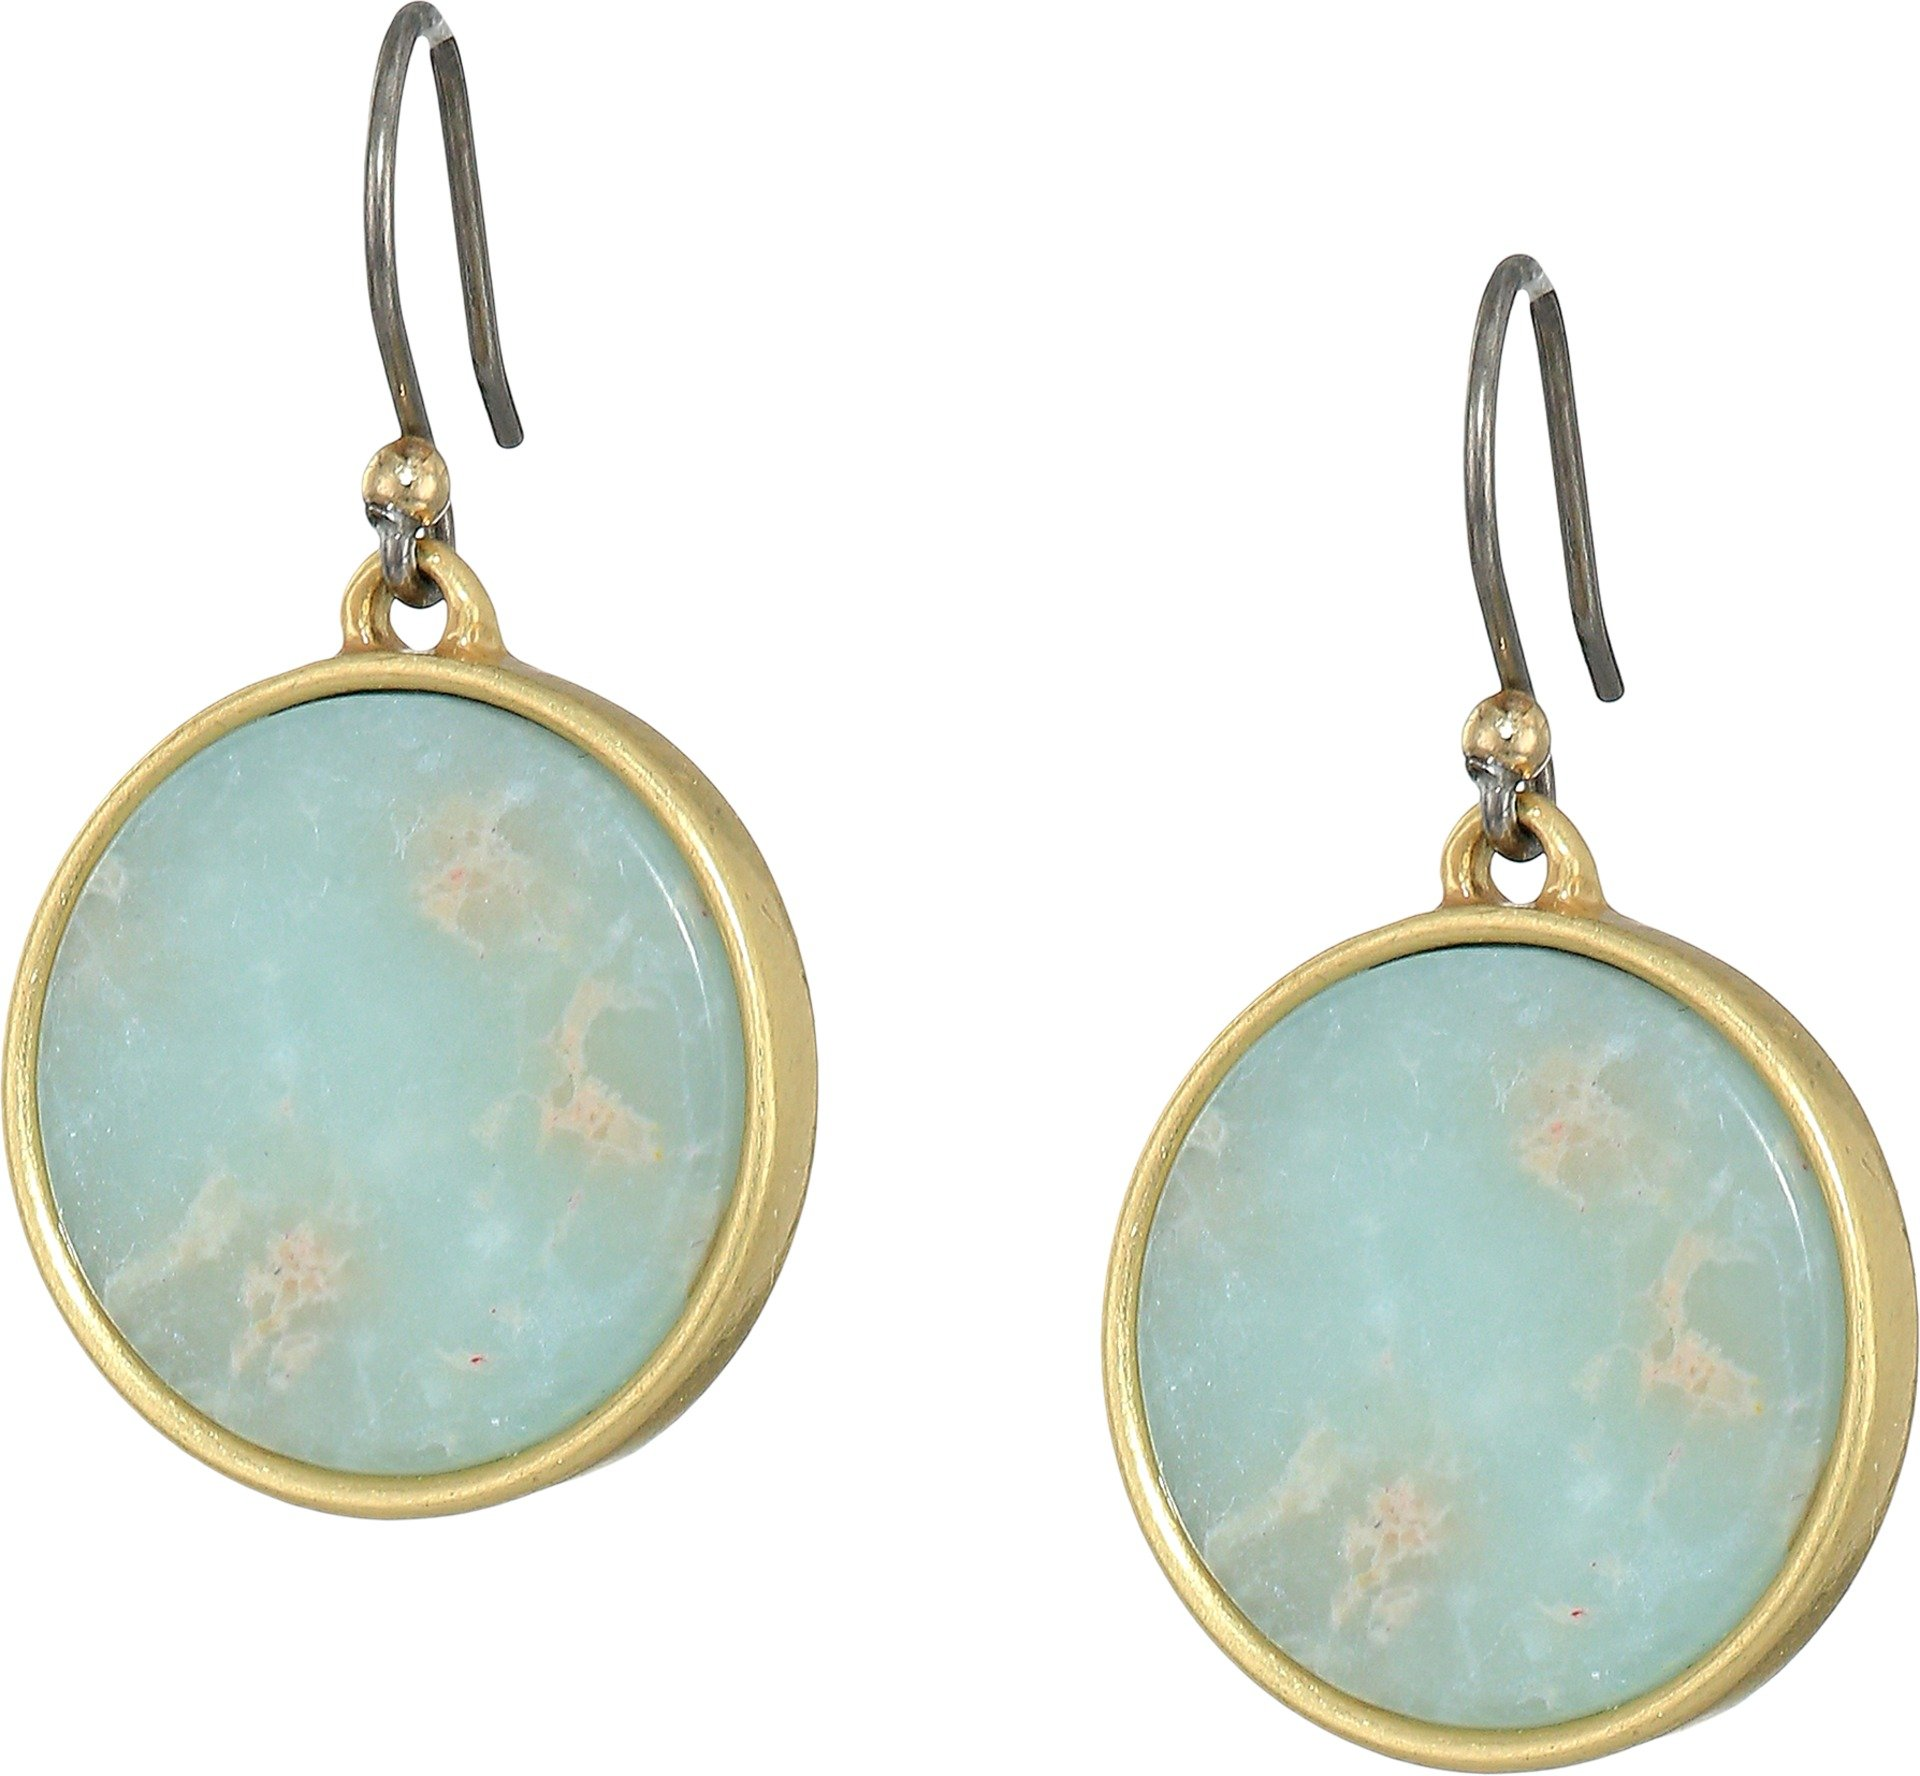 Lucky Brand Women's Jasper Circle Earrings, Gold, One Size by Lucky Brand (Image #1)